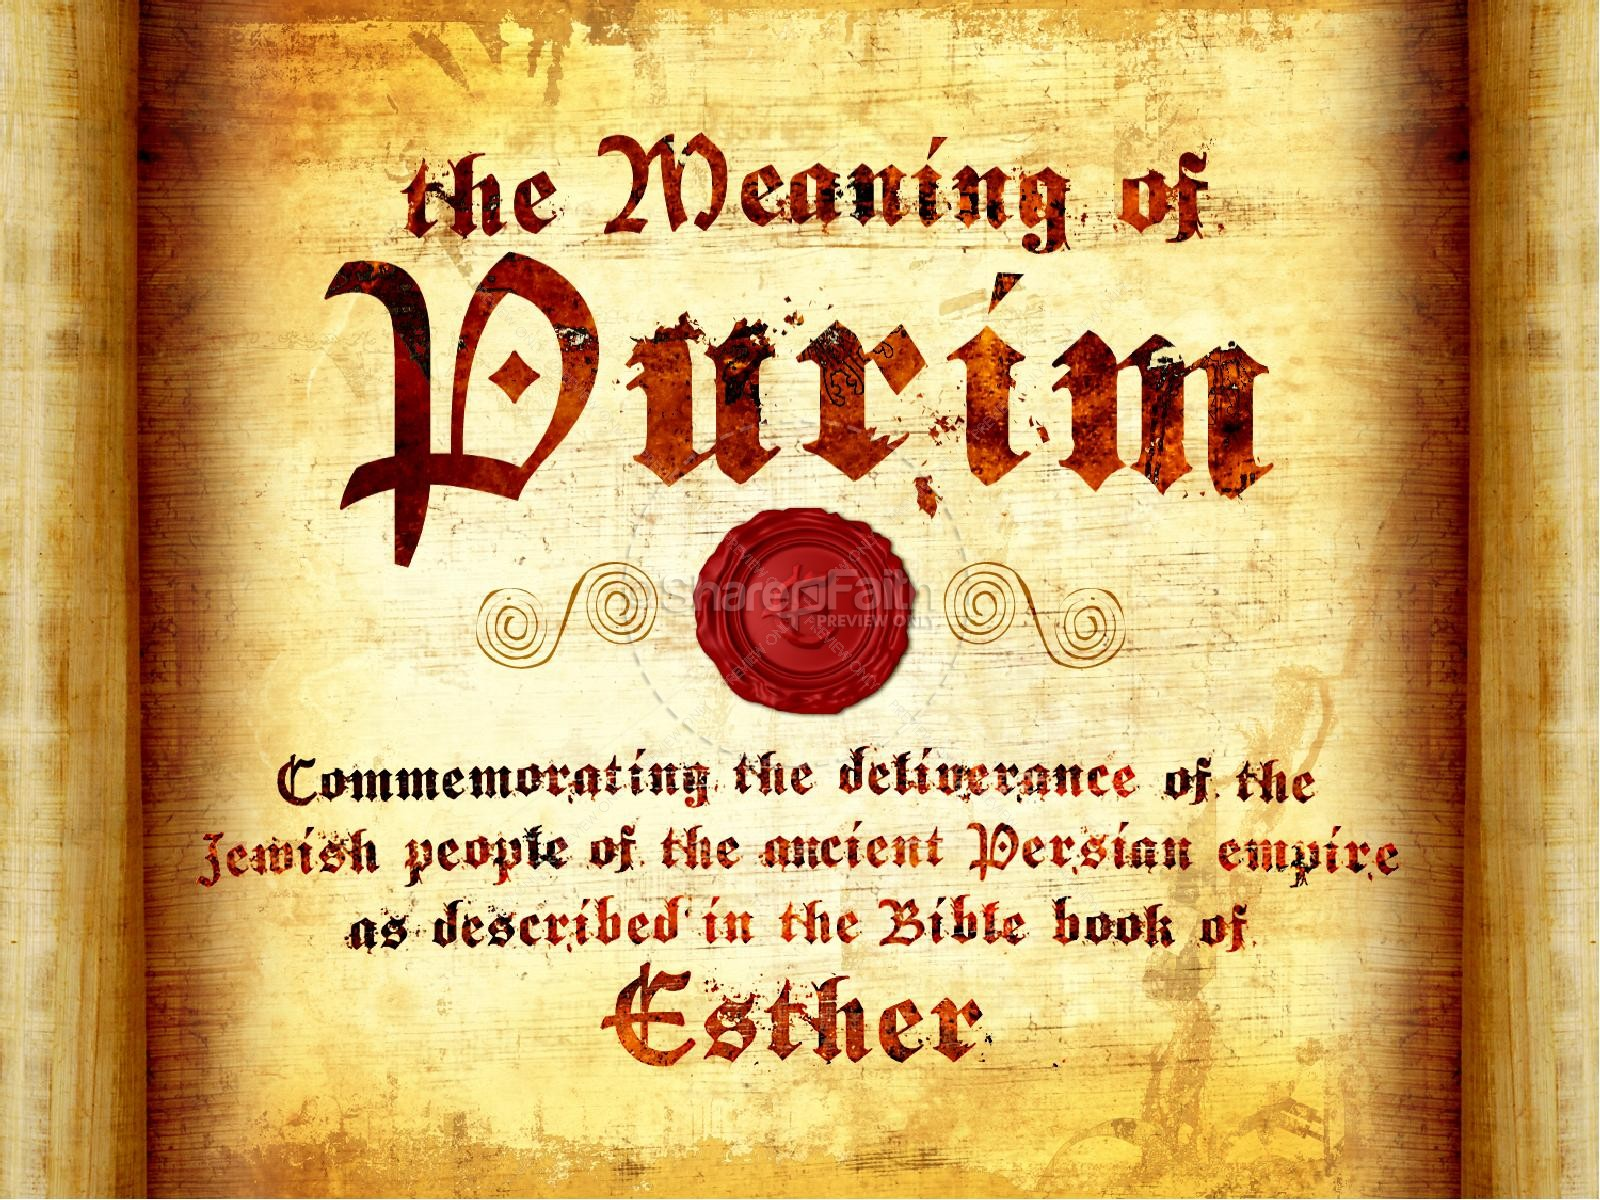 Feast of purim powerpoint template powerpoint sermons feast of purim powerpoint template toneelgroepblik Images